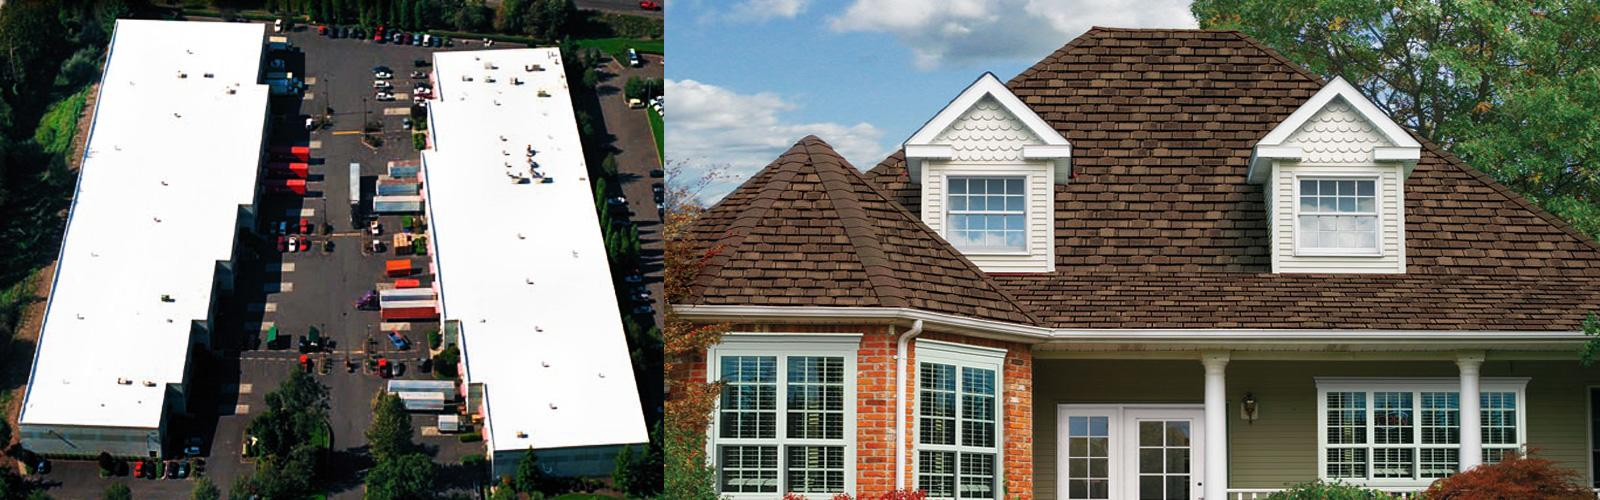 Home evolutions ny - Home Evolution 1 Rated Roofing Siding Windows Contractor